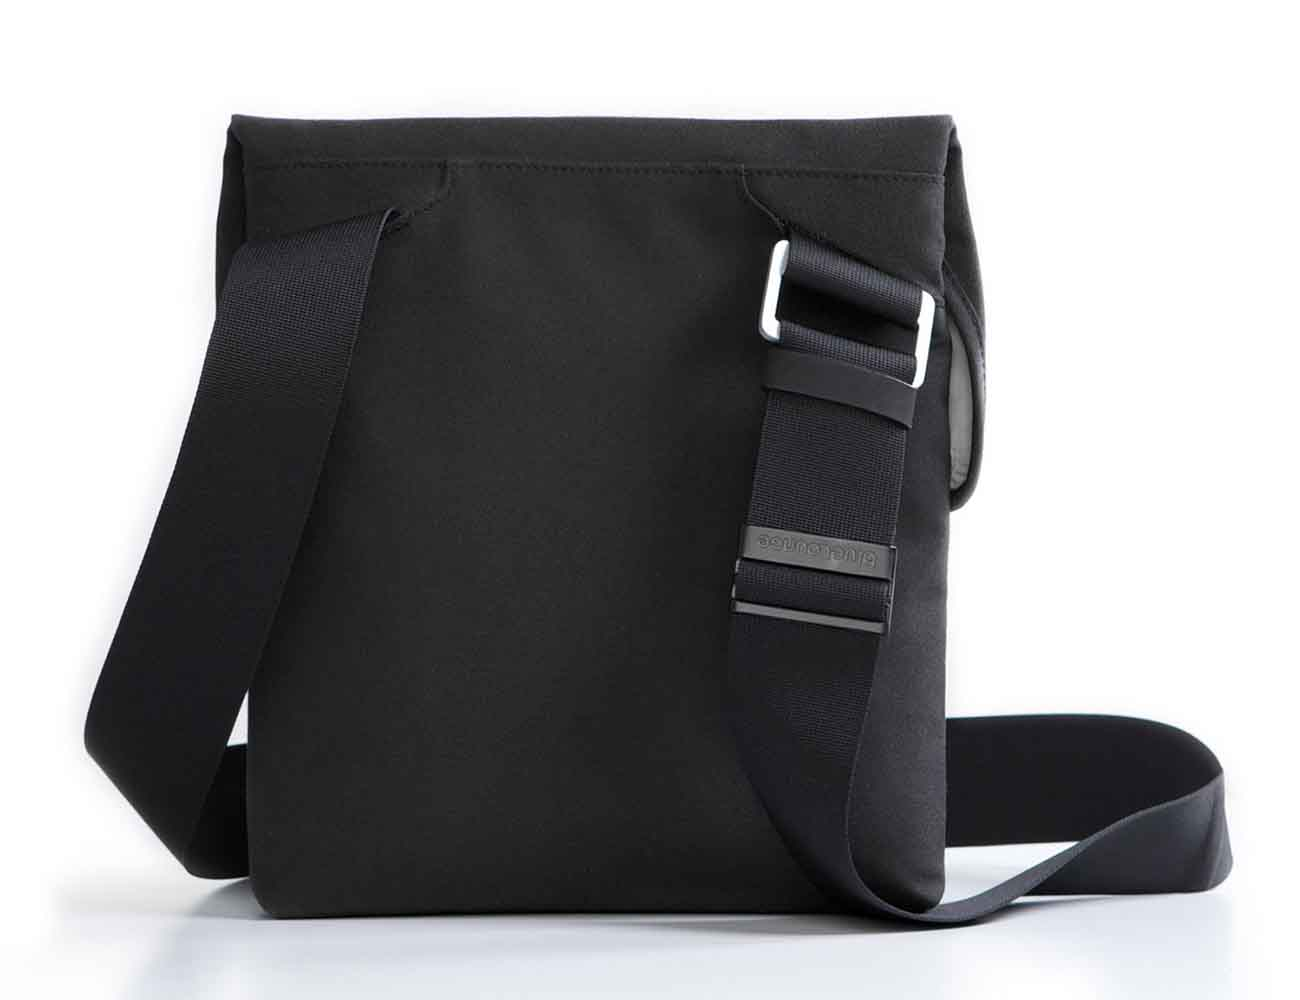 IPad+Sling+Bag+By+Bluelounge